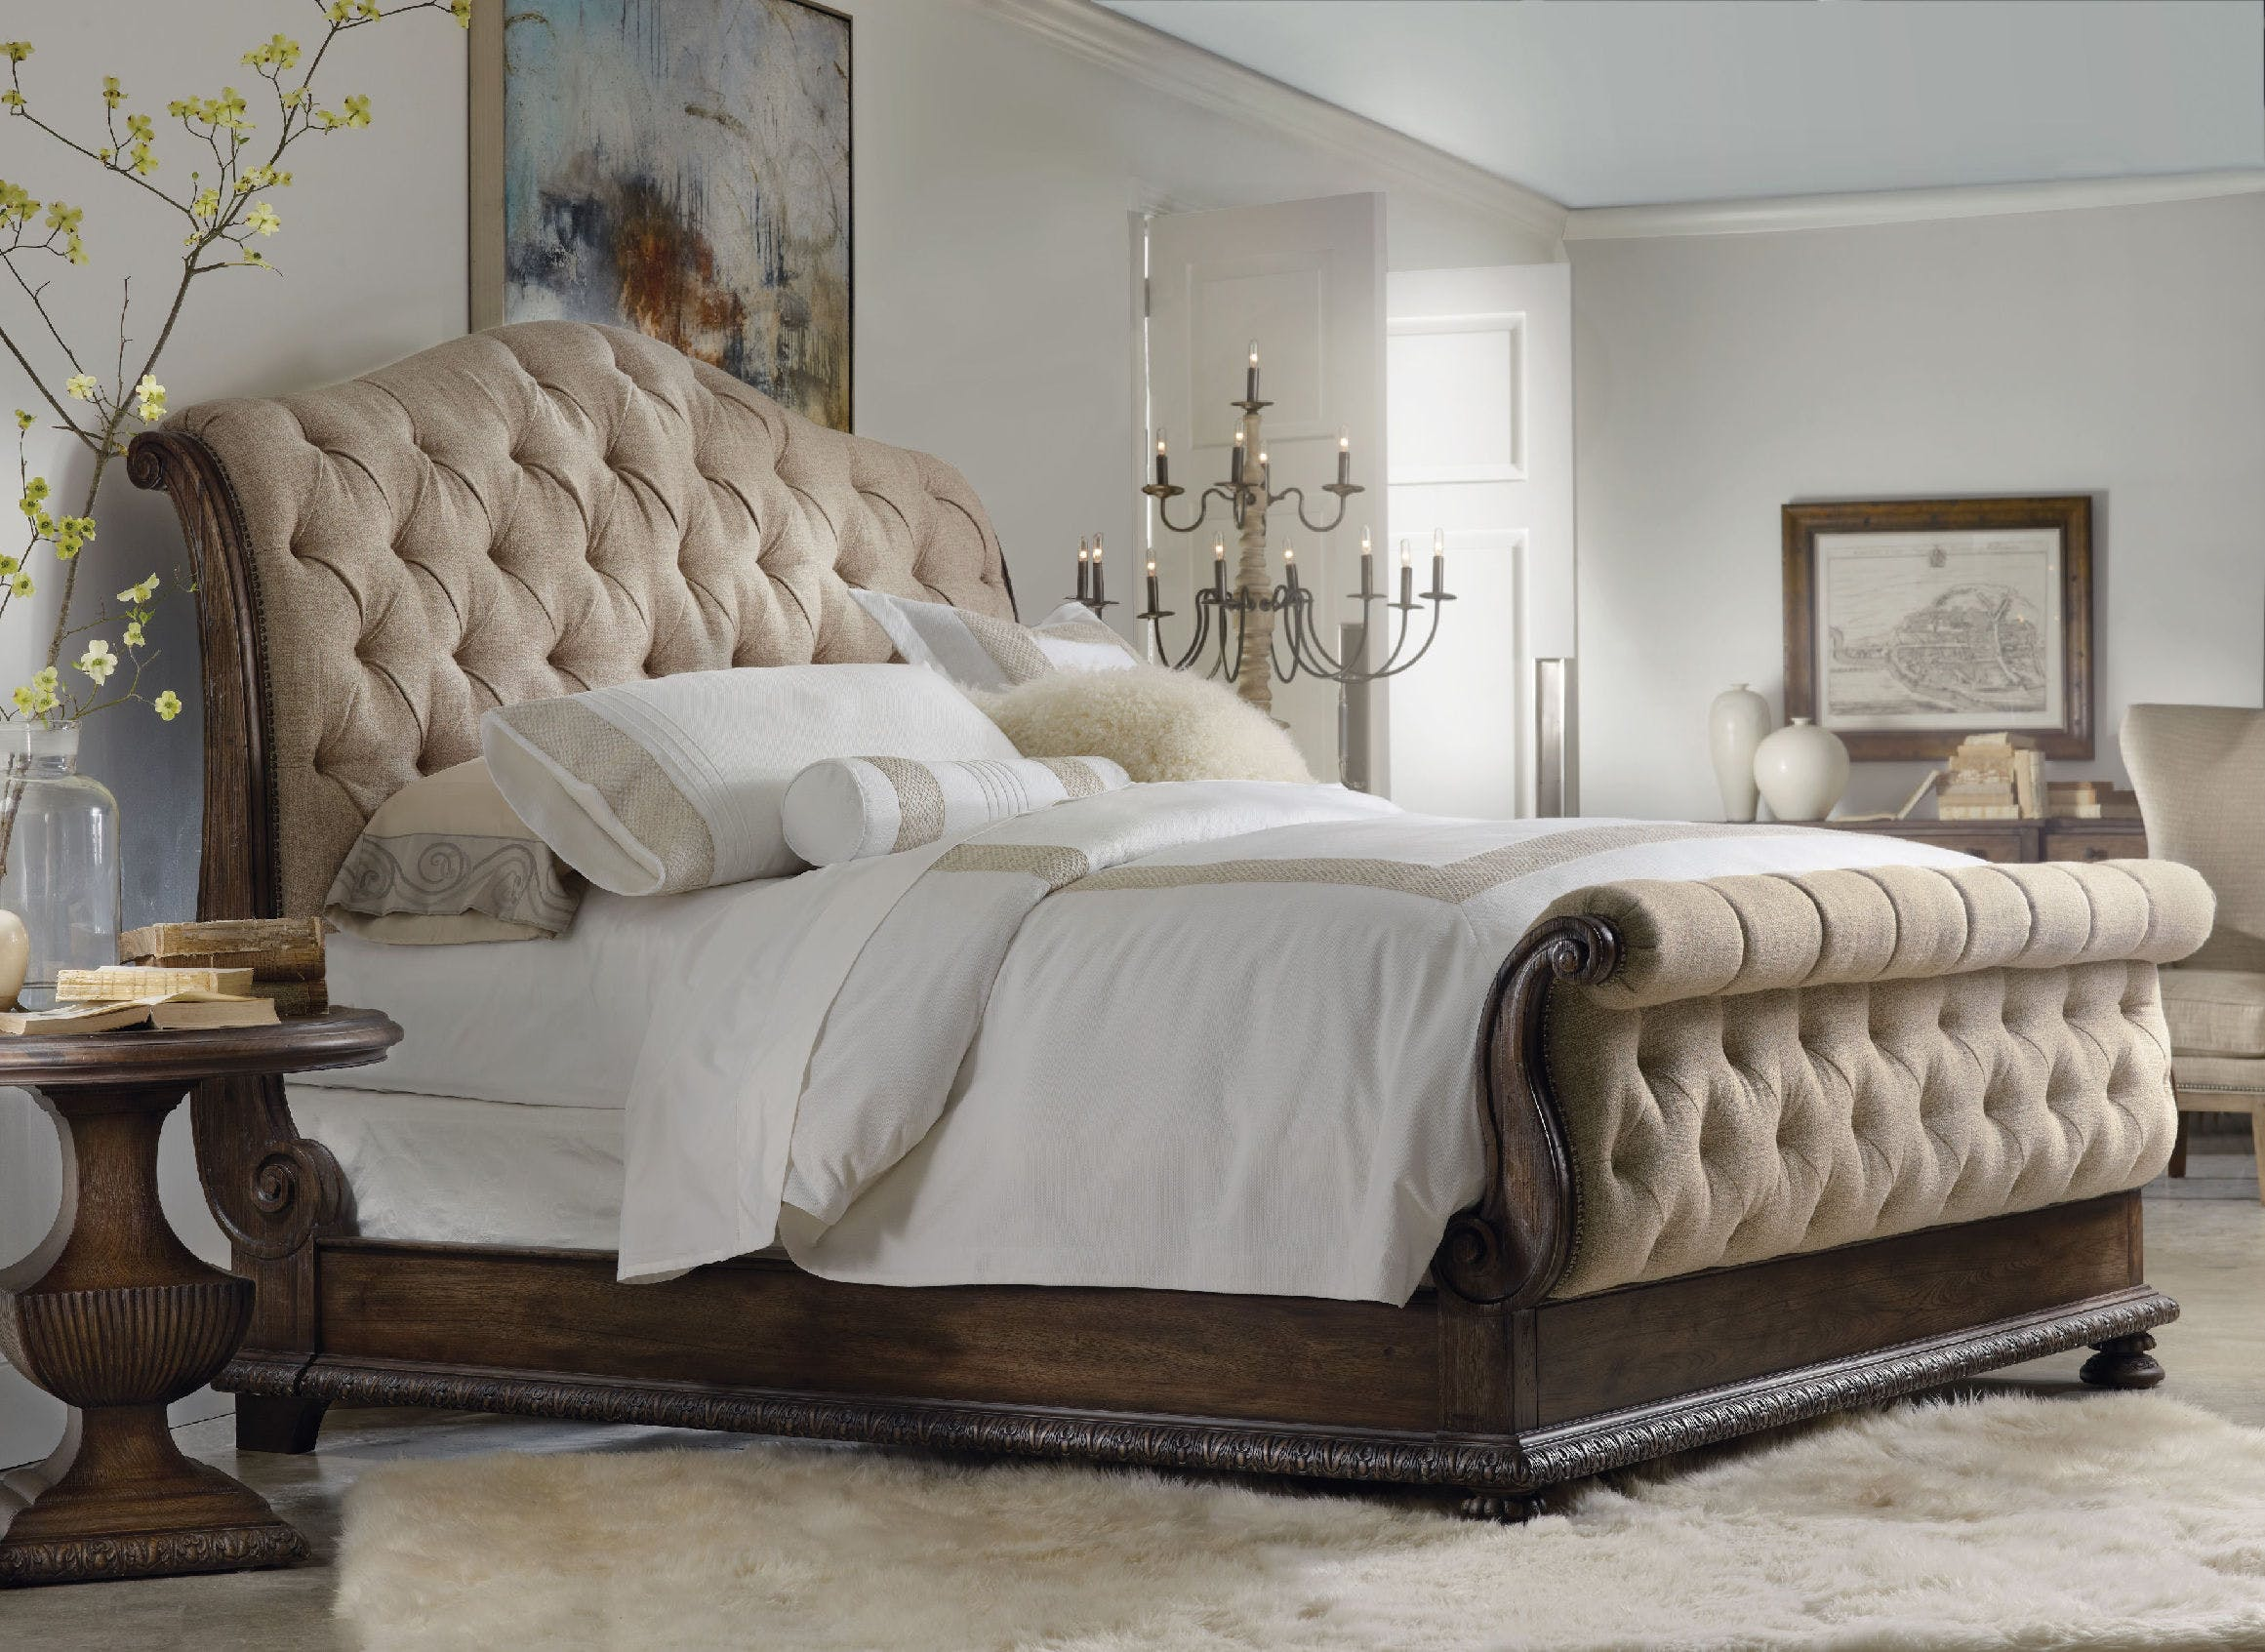 tufted bed. Hooker Furniture Rhapsody King Tufted Bed 5070-90566 D